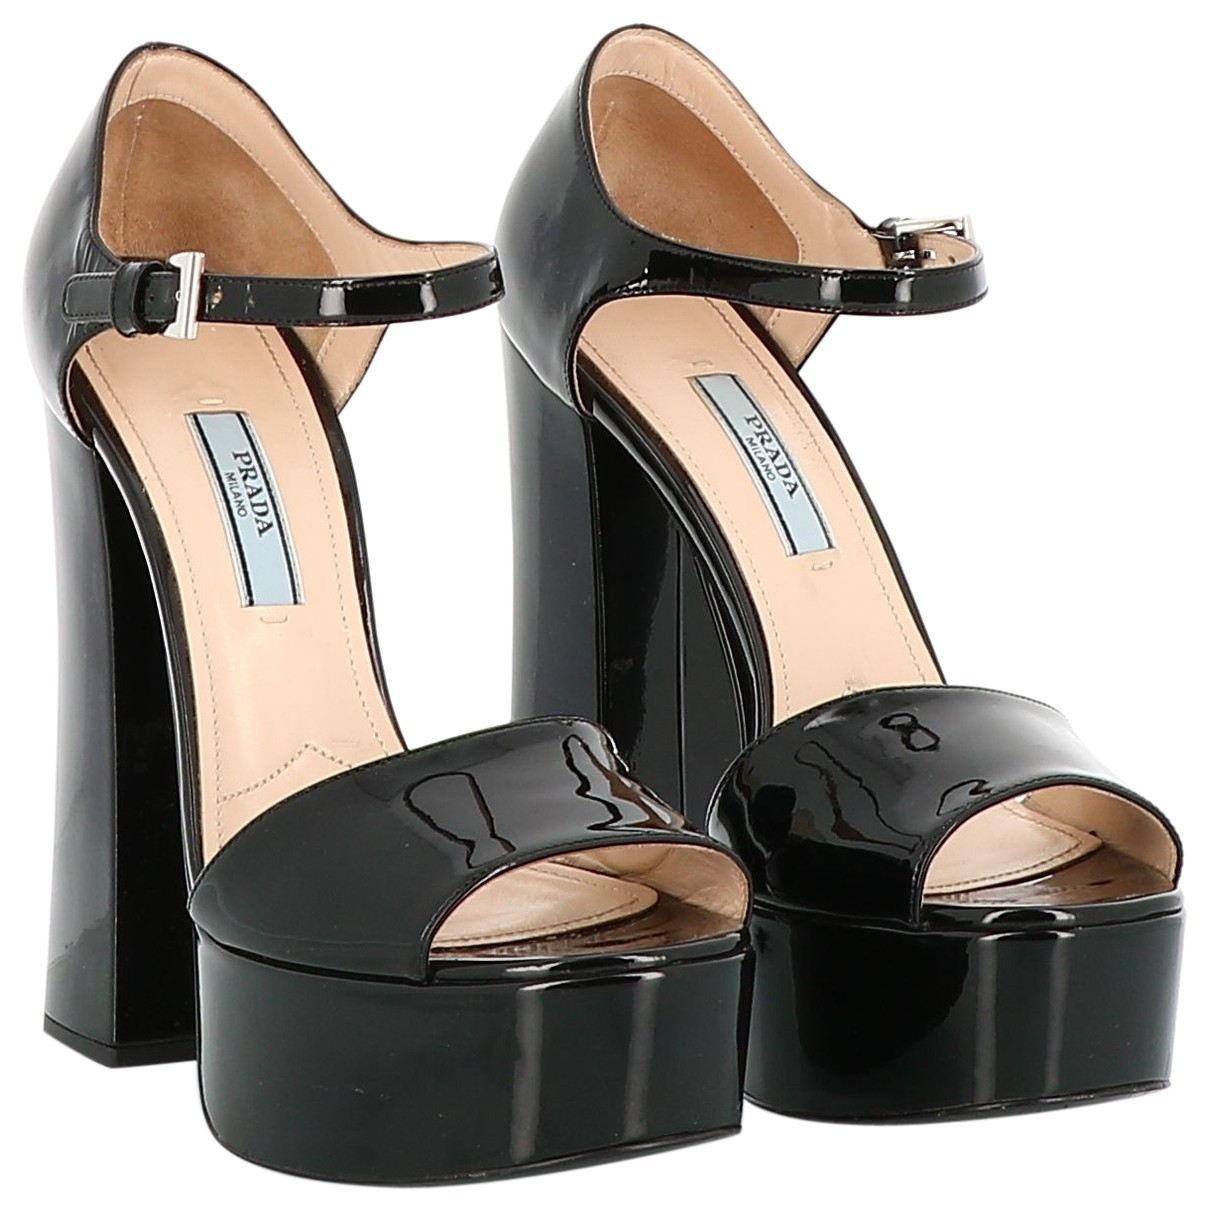 Prada \N Black Patent leather Sandals for Women 38.5 EU